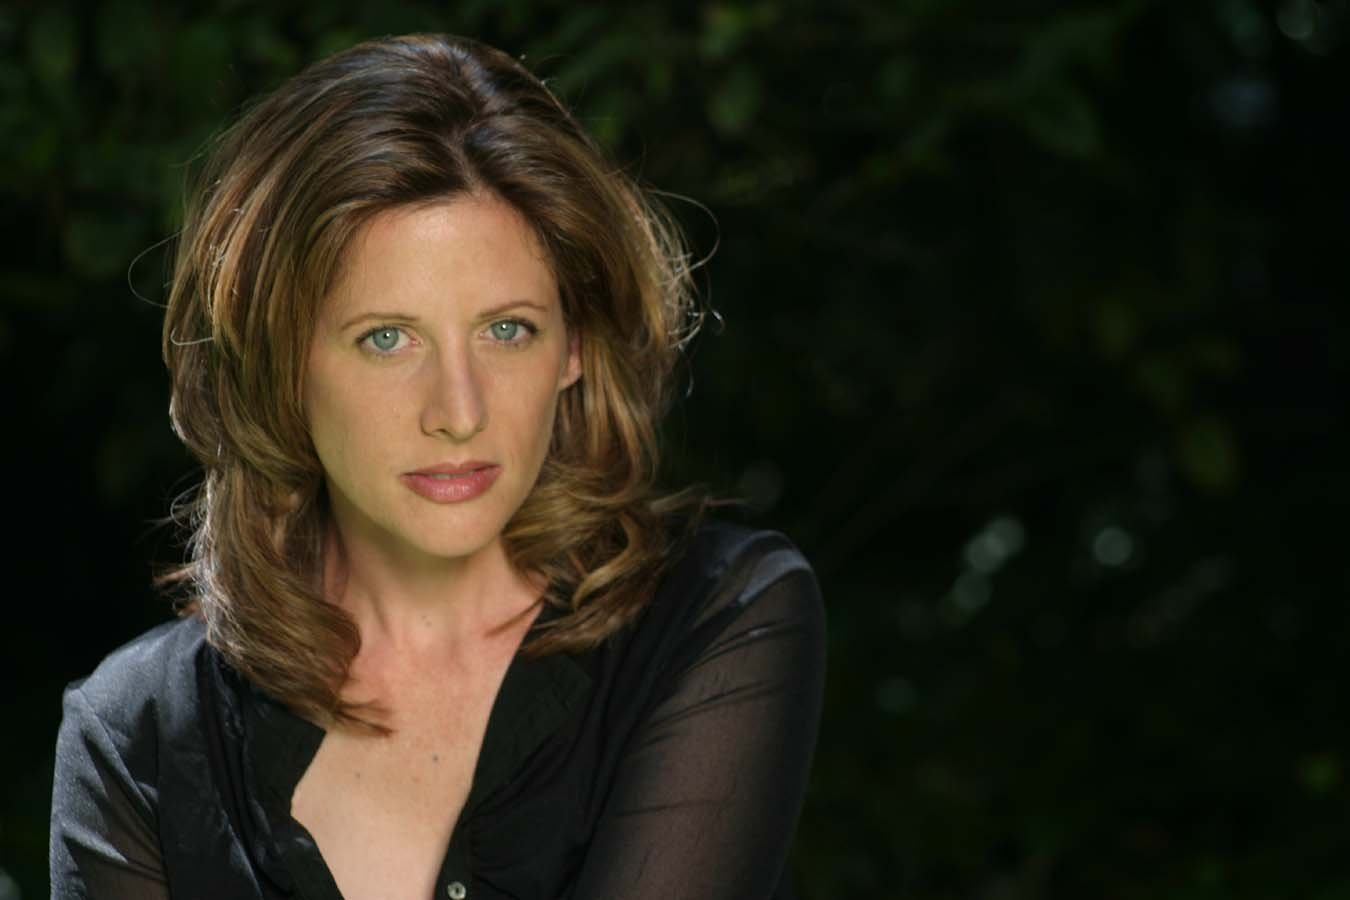 A portrait of Tracy Kristin Nelson from 2009. | Source: WIkimedia Commons